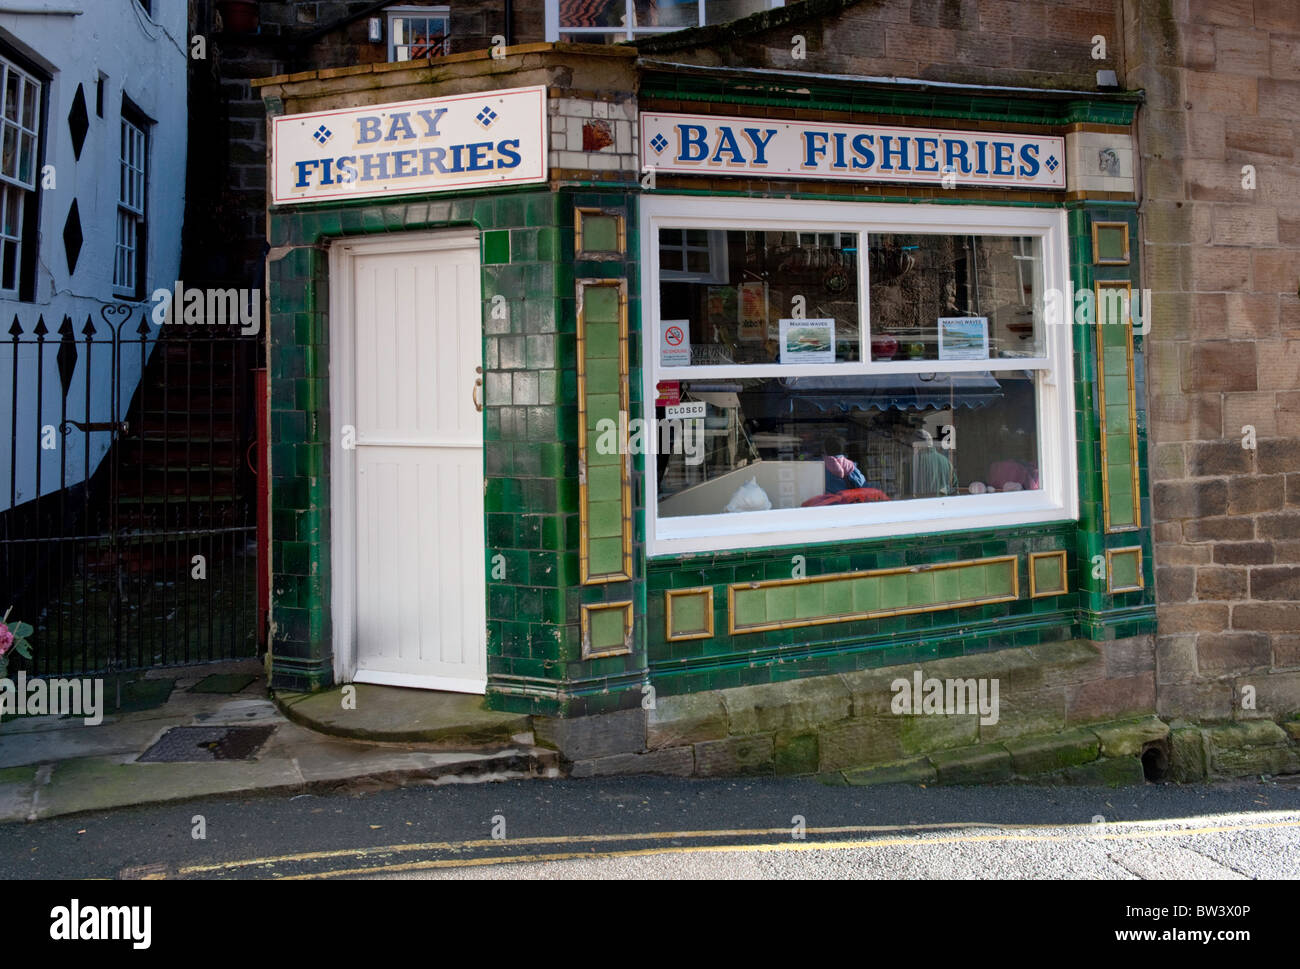 Wet fish shop in Robin Hoods Bay near Whitby, North Yorkshire. - Stock Image